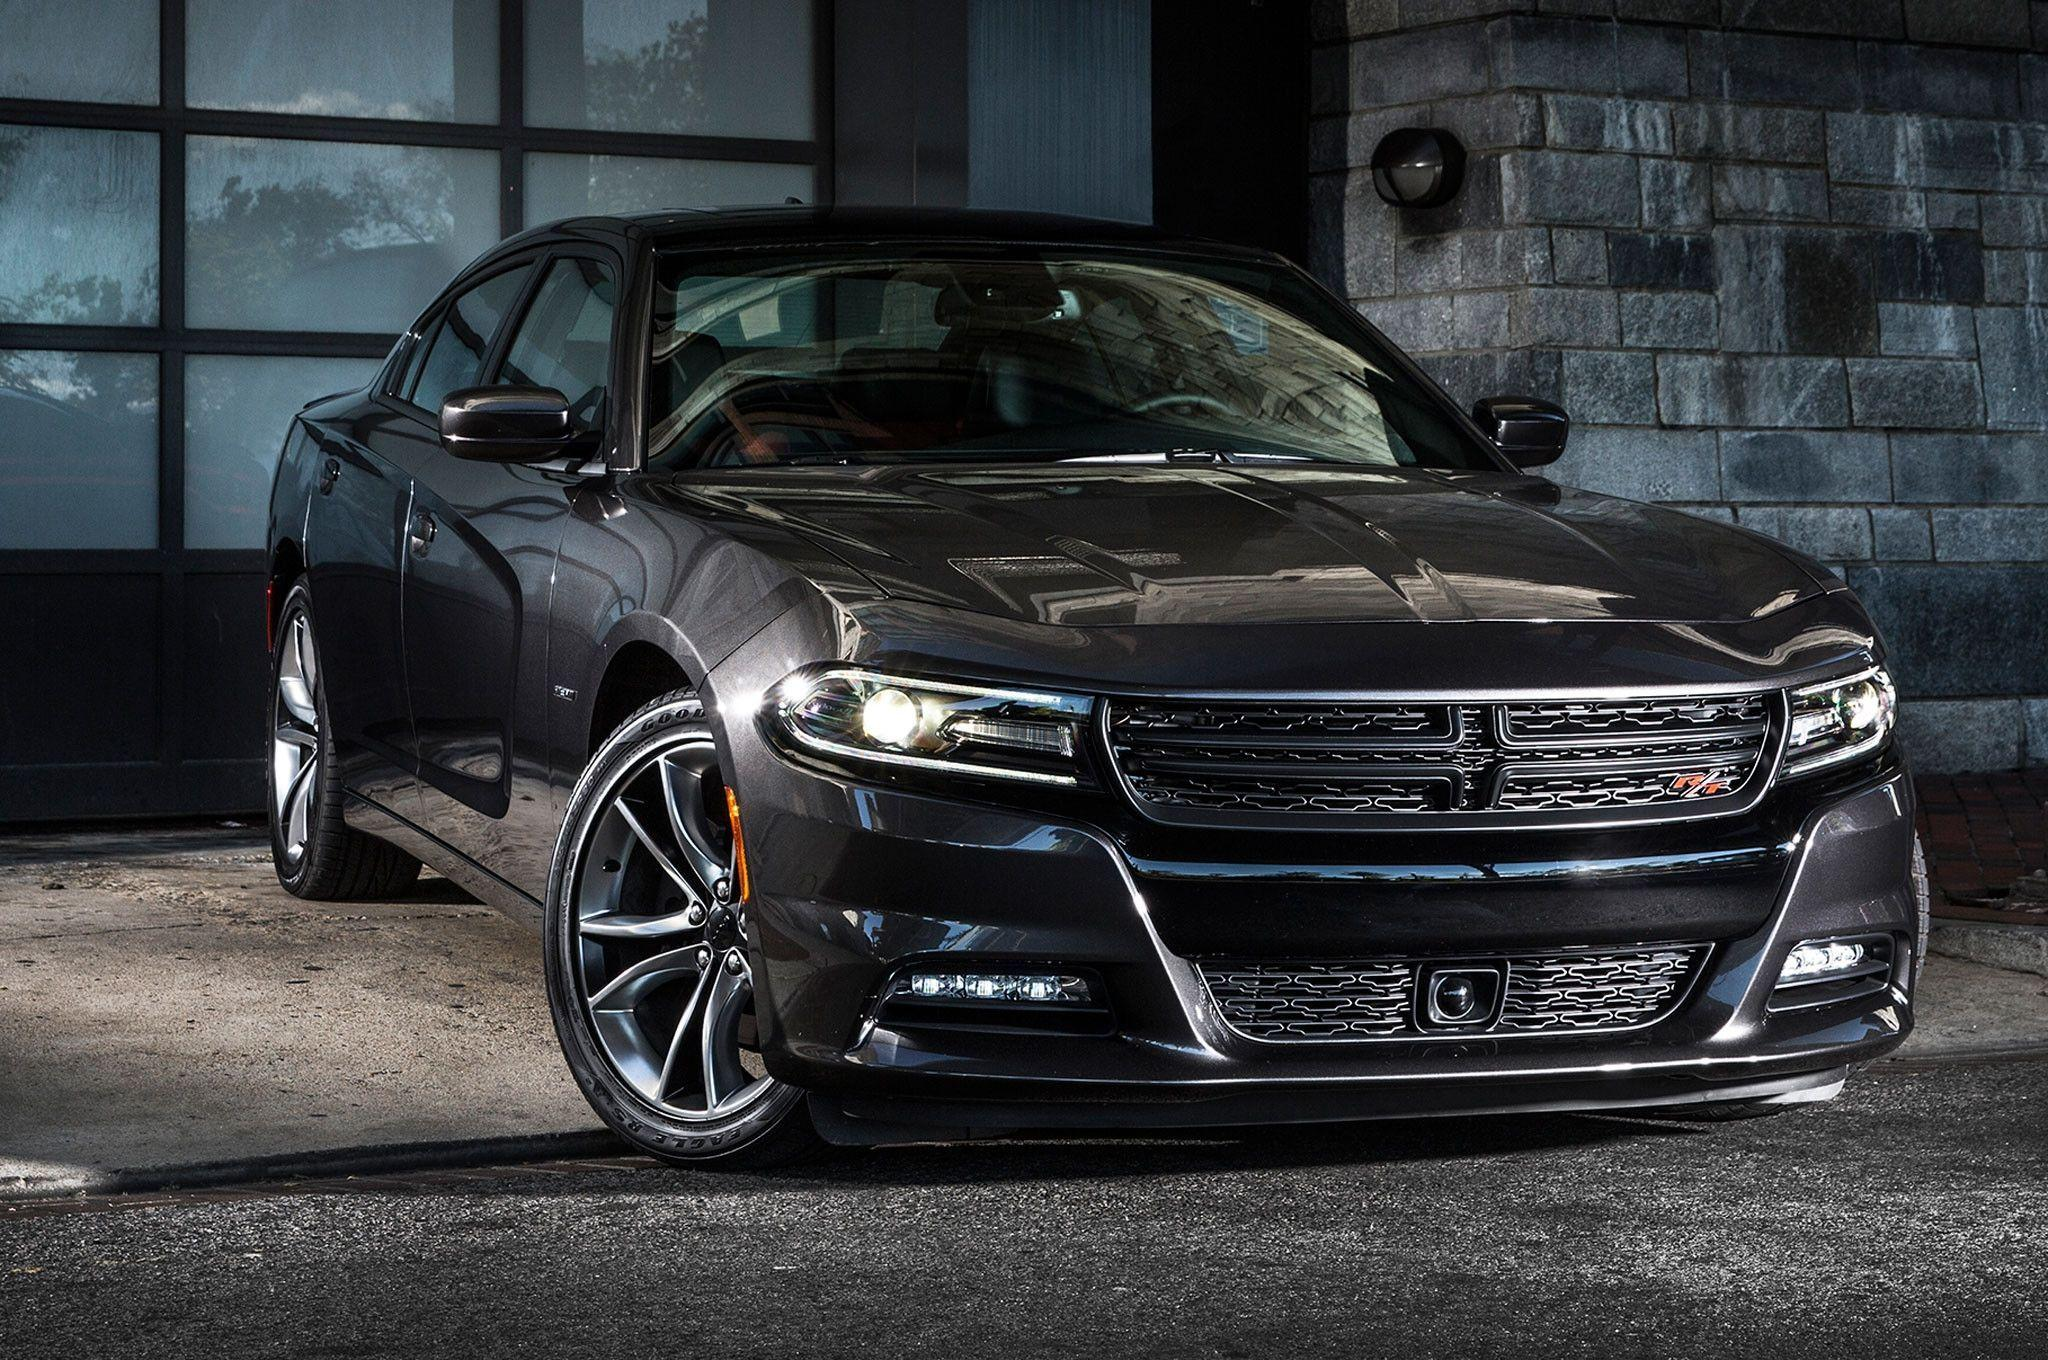 Black Dodge Charger Wallpapers Top Free Black Dodge Charger Backgrounds Wallpaperaccess